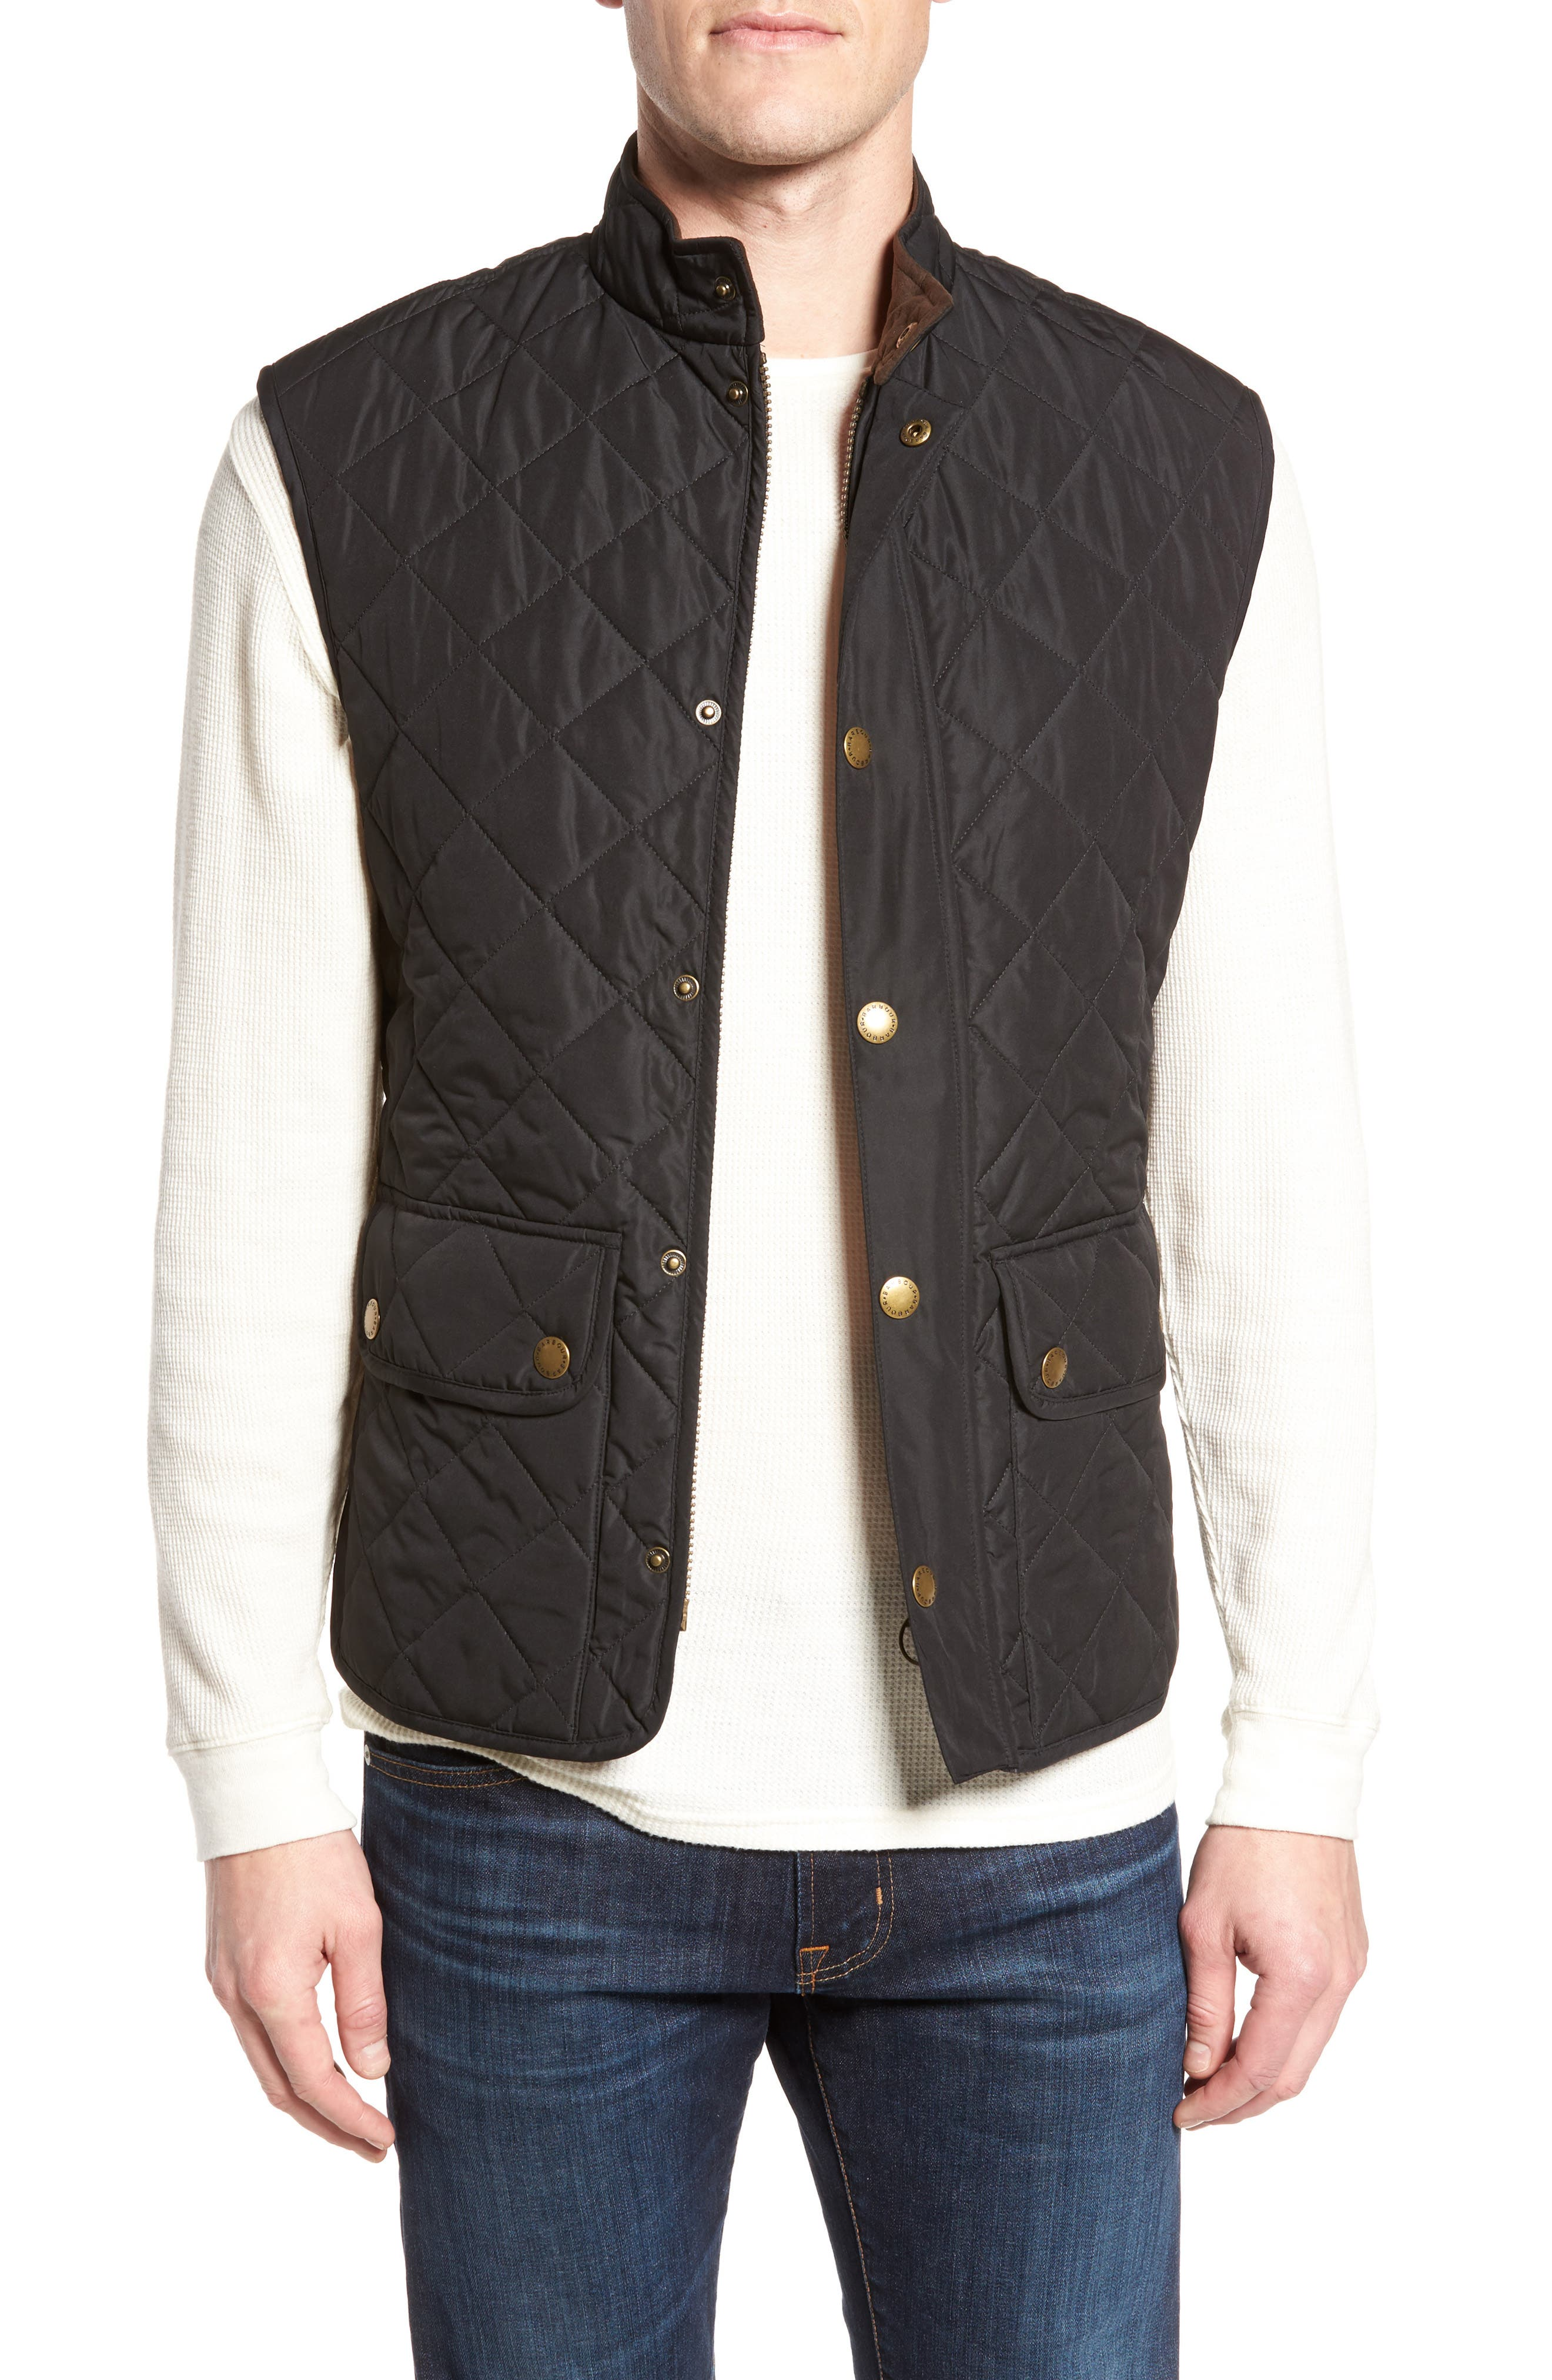 Alternate Image 1 Selected - Barbour 'Lowerdale' Trim Fit Quilted Vest